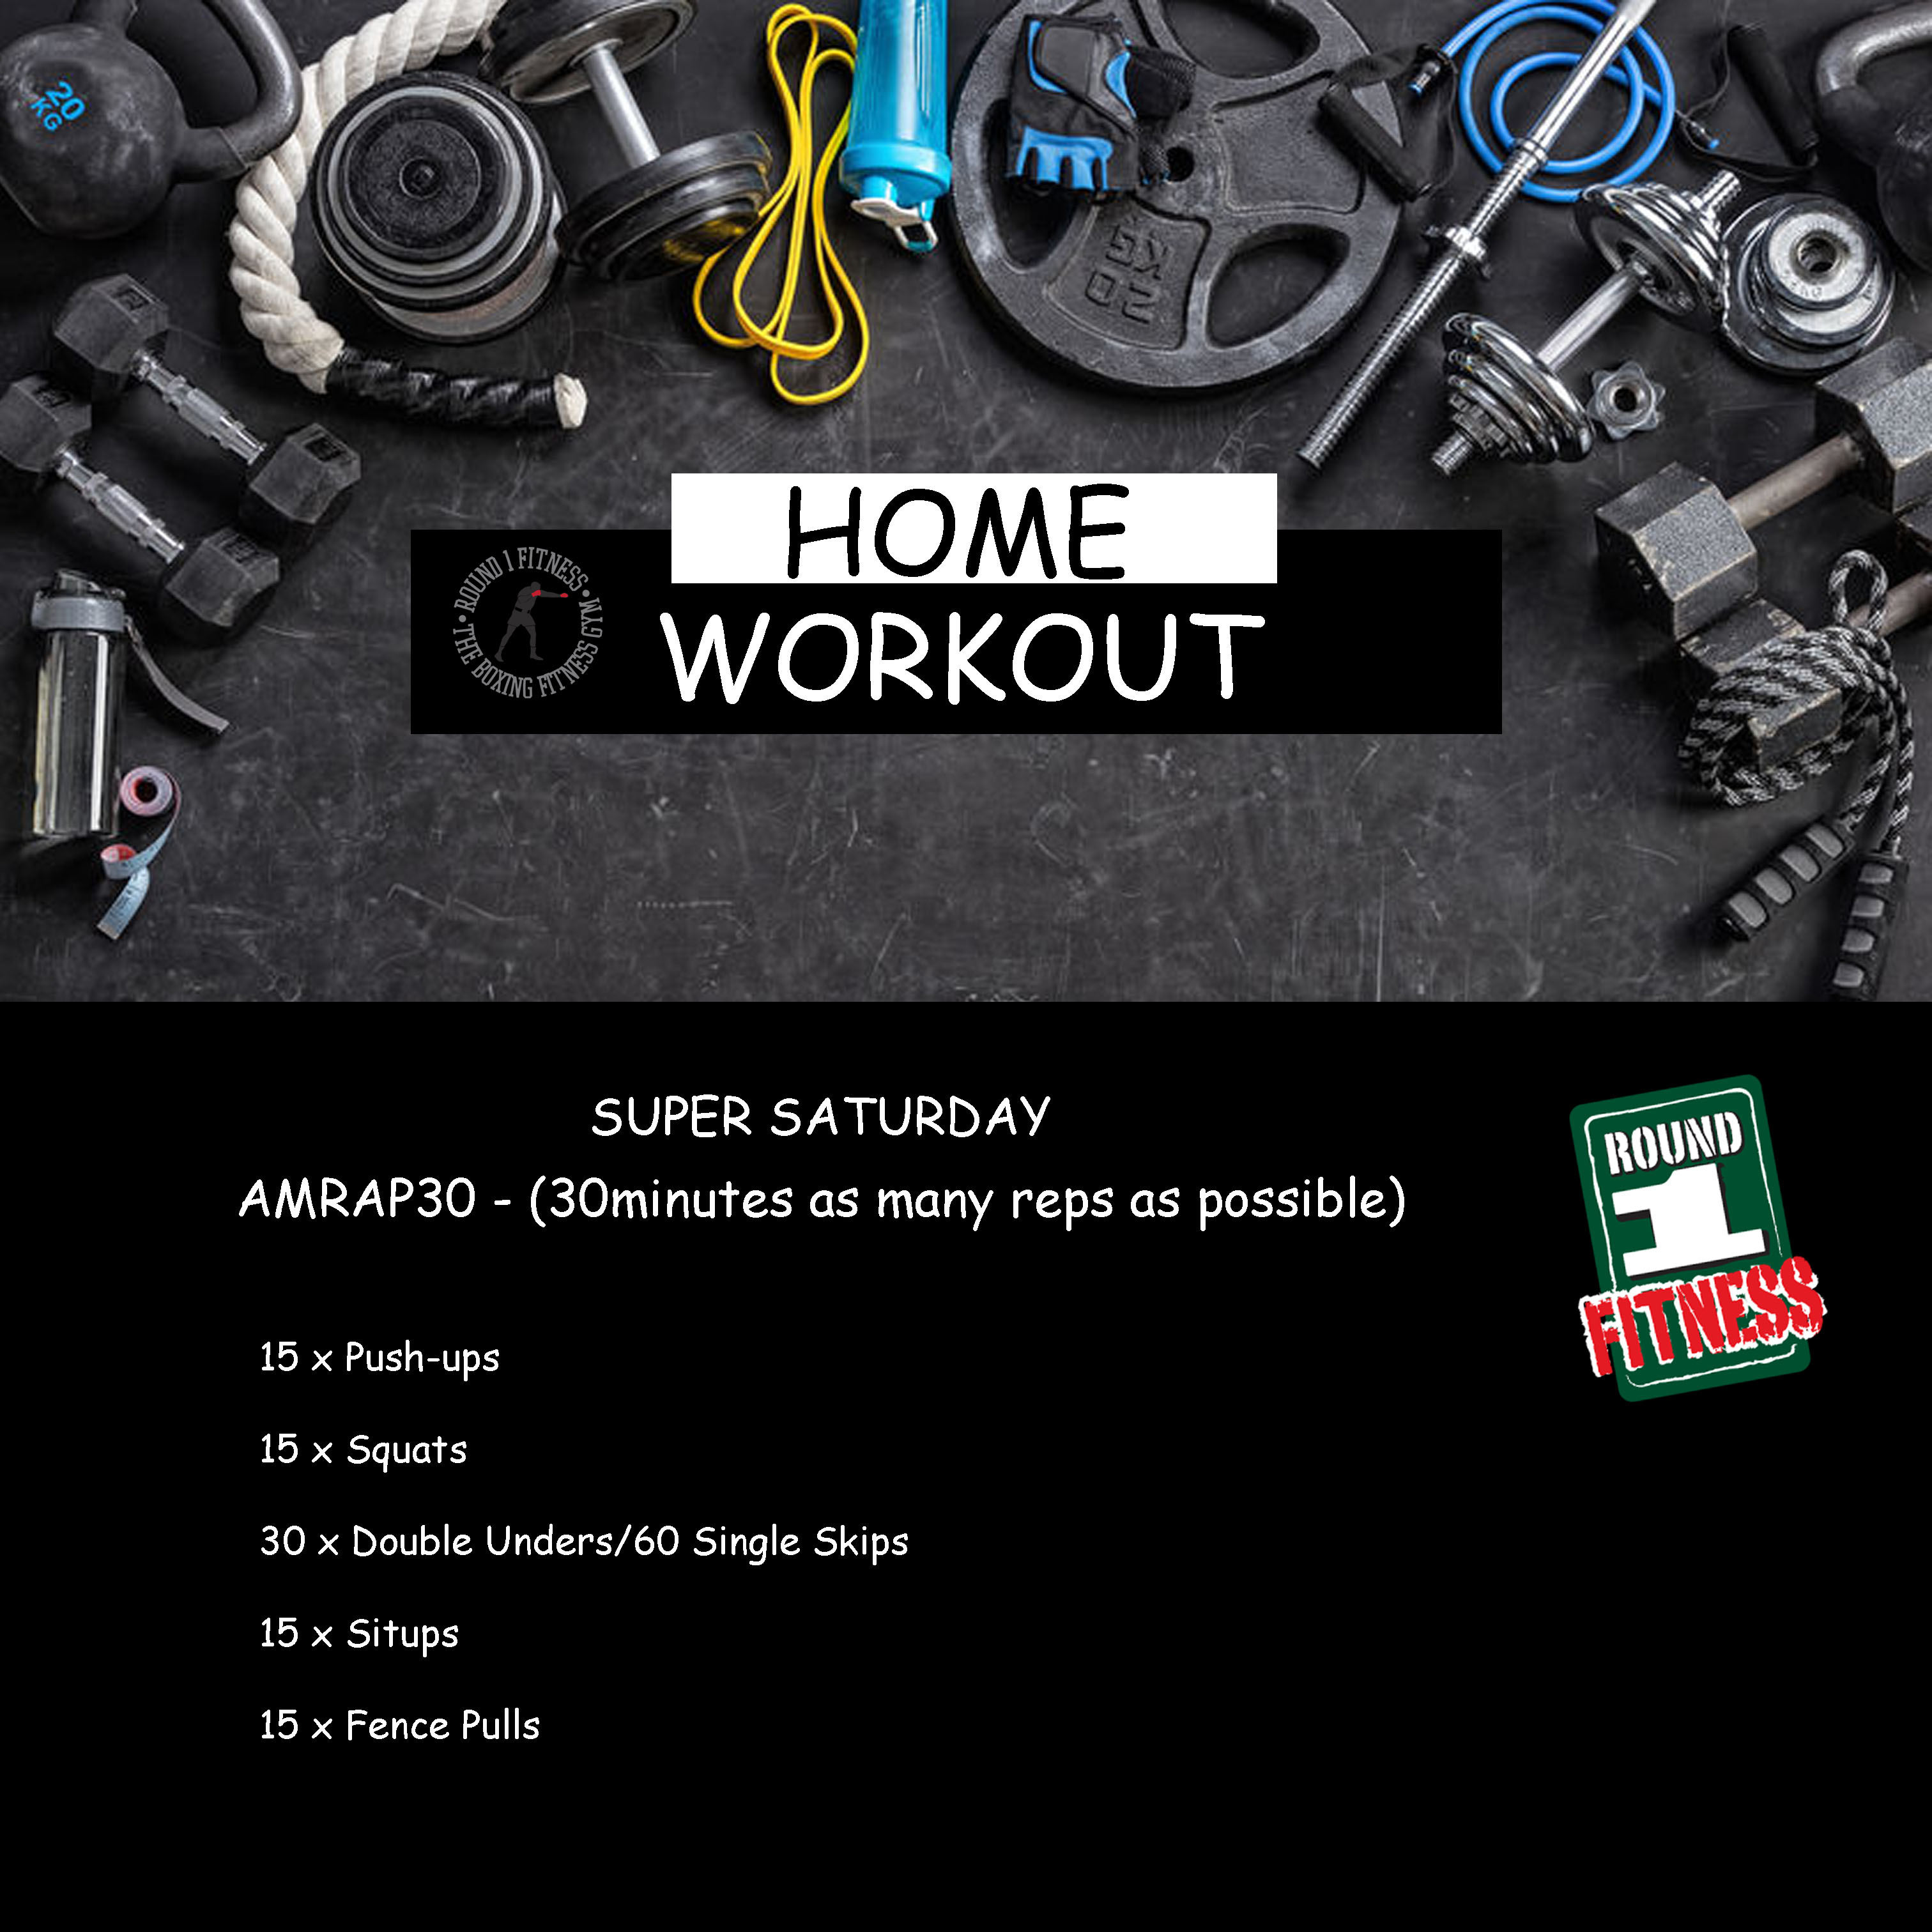 Home Workout:  Saturday, May 16th